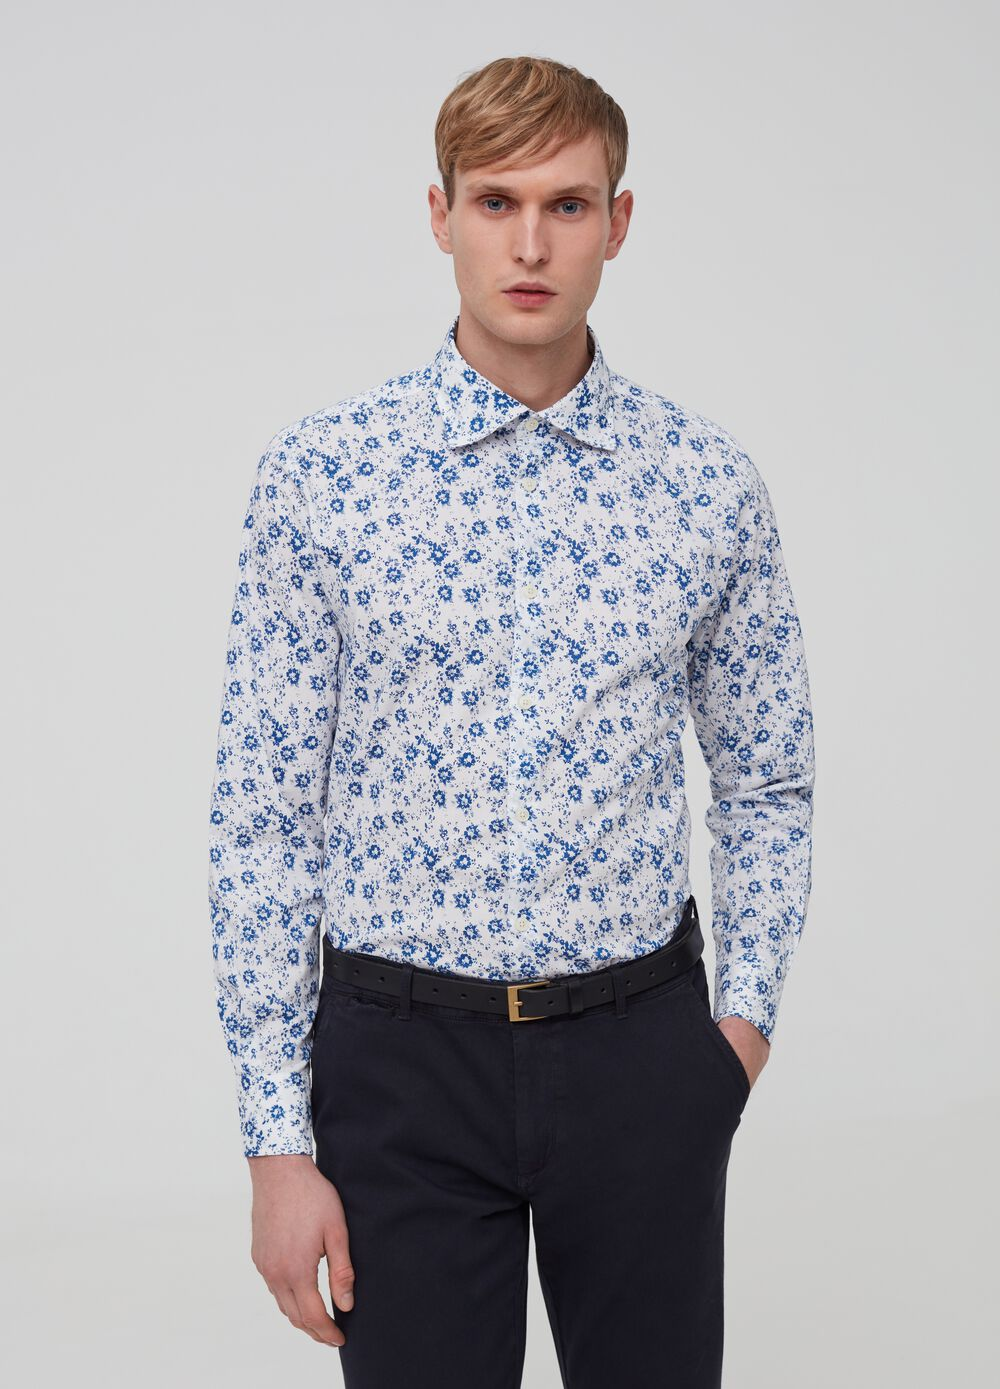 100% cotton shirt with floral pattern